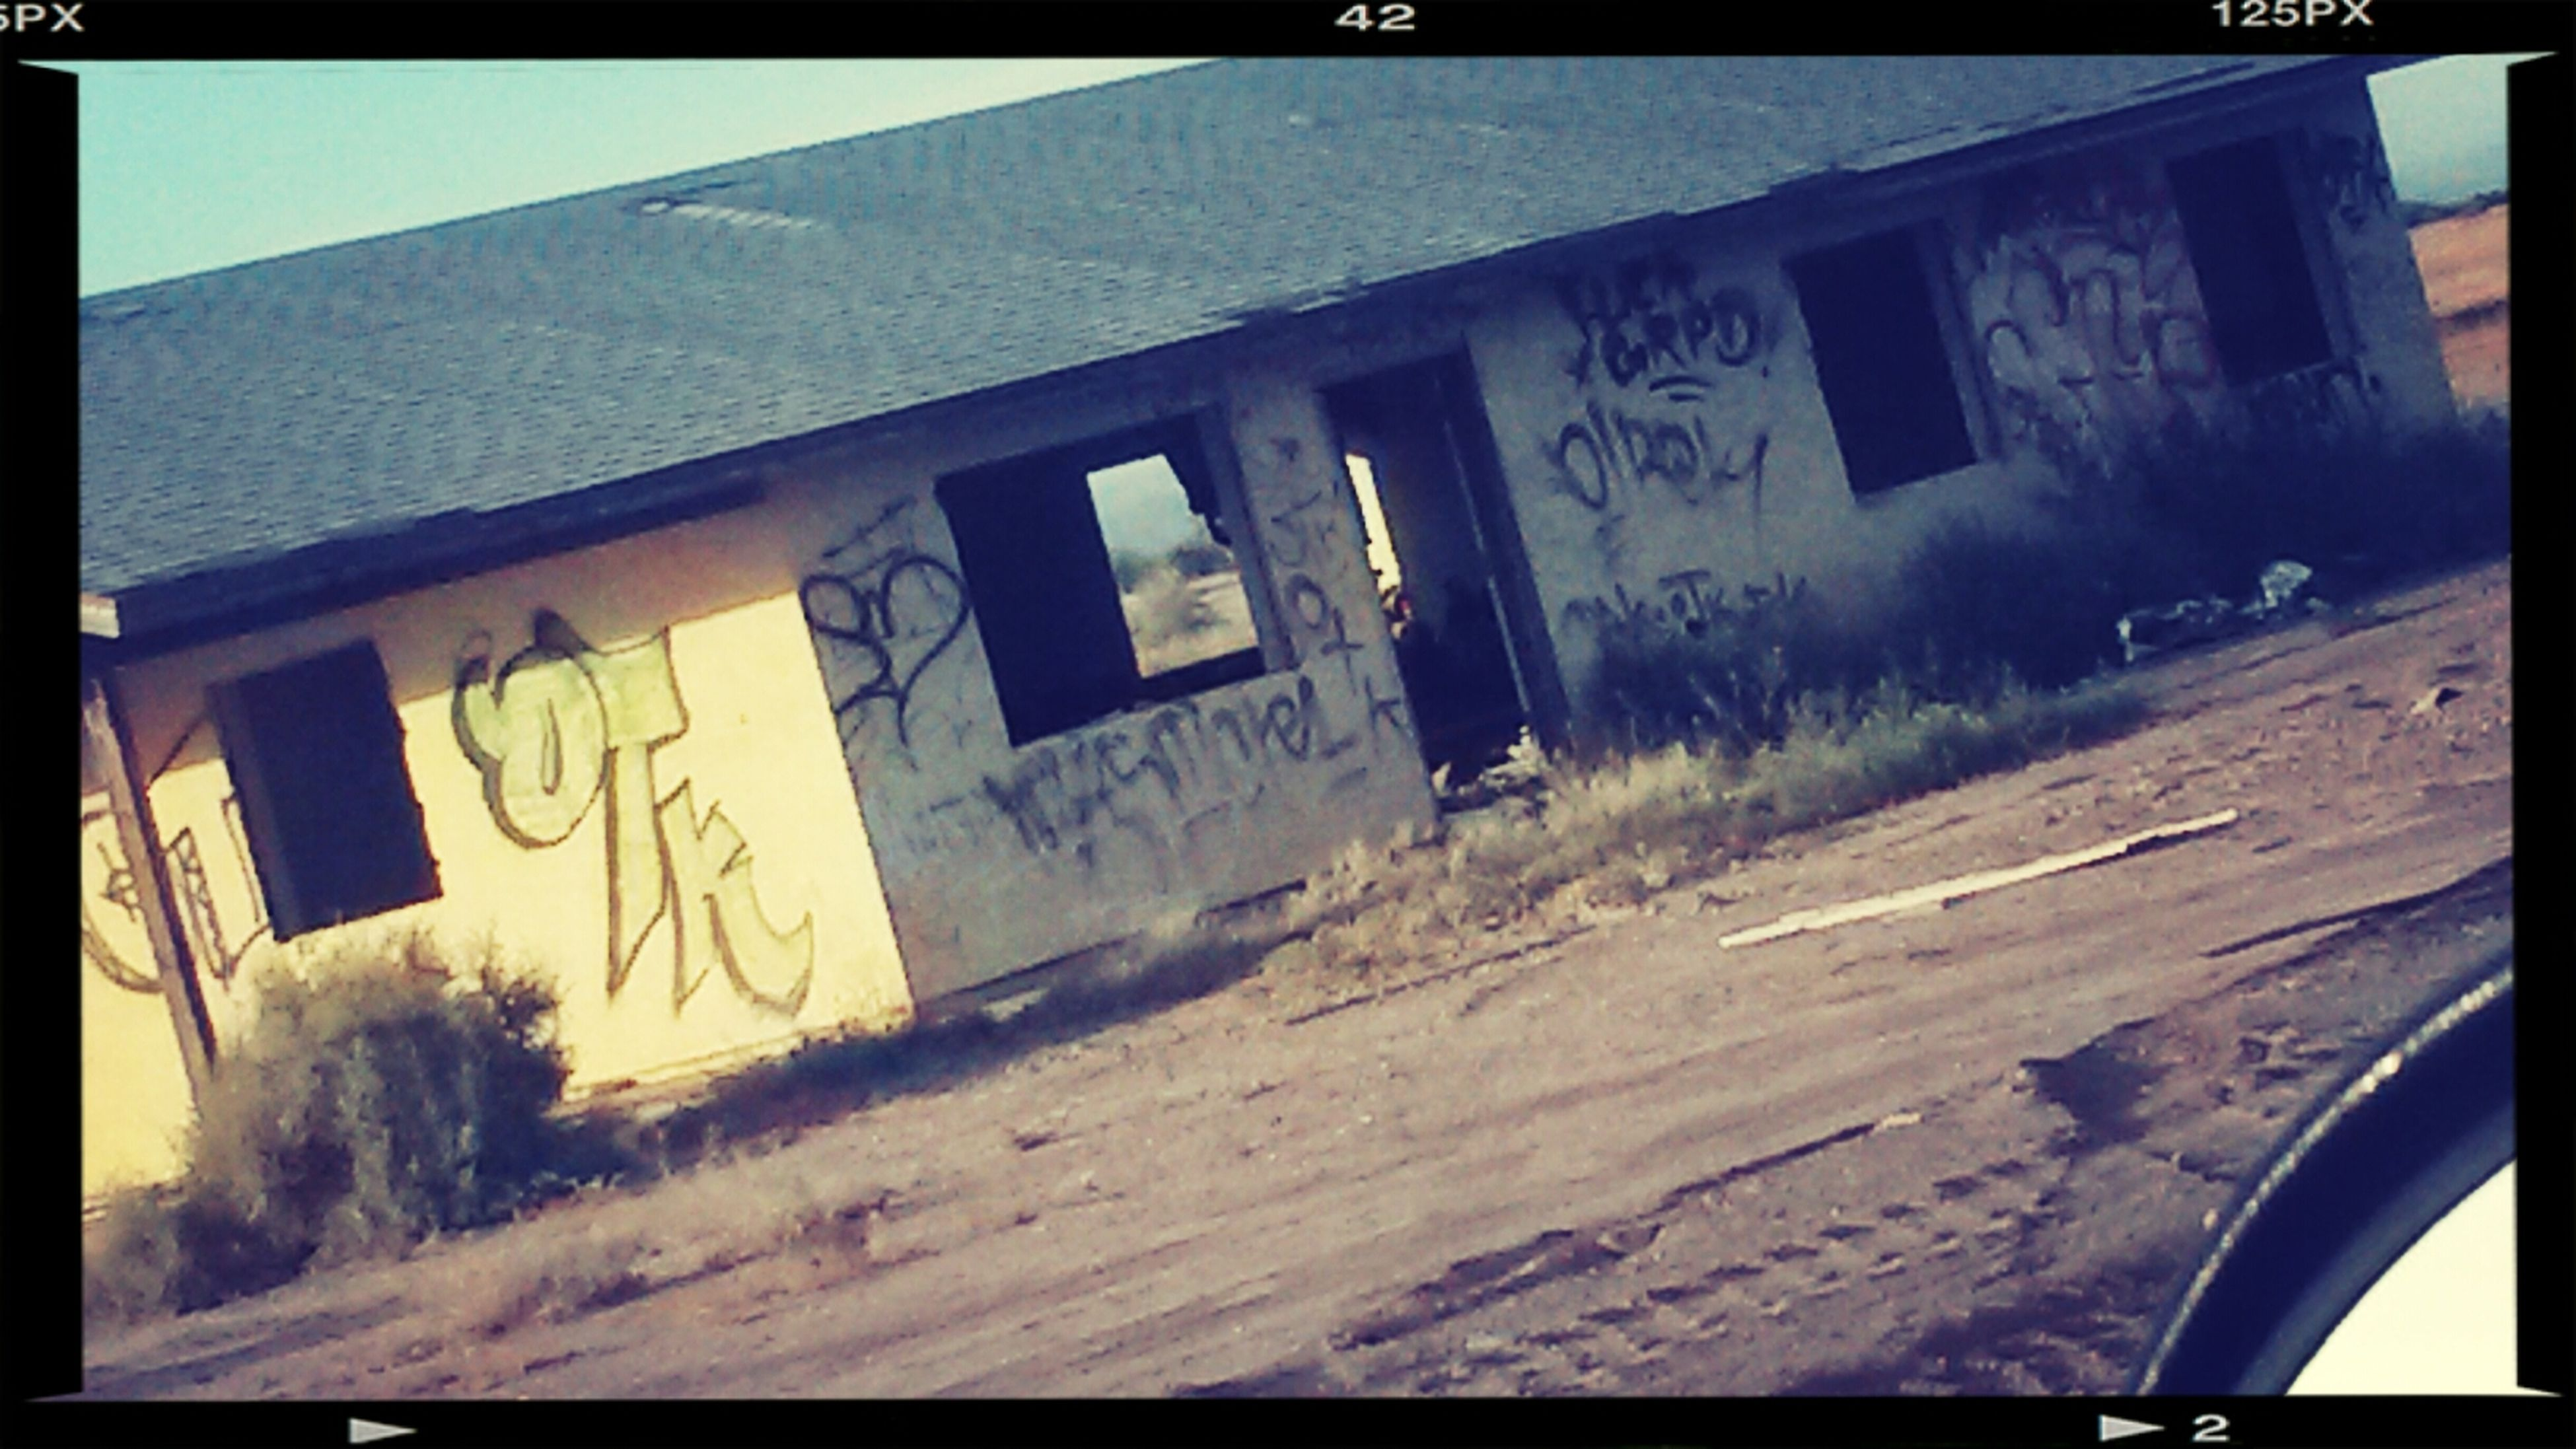 transfer print, auto post production filter, built structure, architecture, building exterior, transportation, window, mode of transport, text, abandoned, land vehicle, house, day, western script, graffiti, car, communication, no people, sky, outdoors